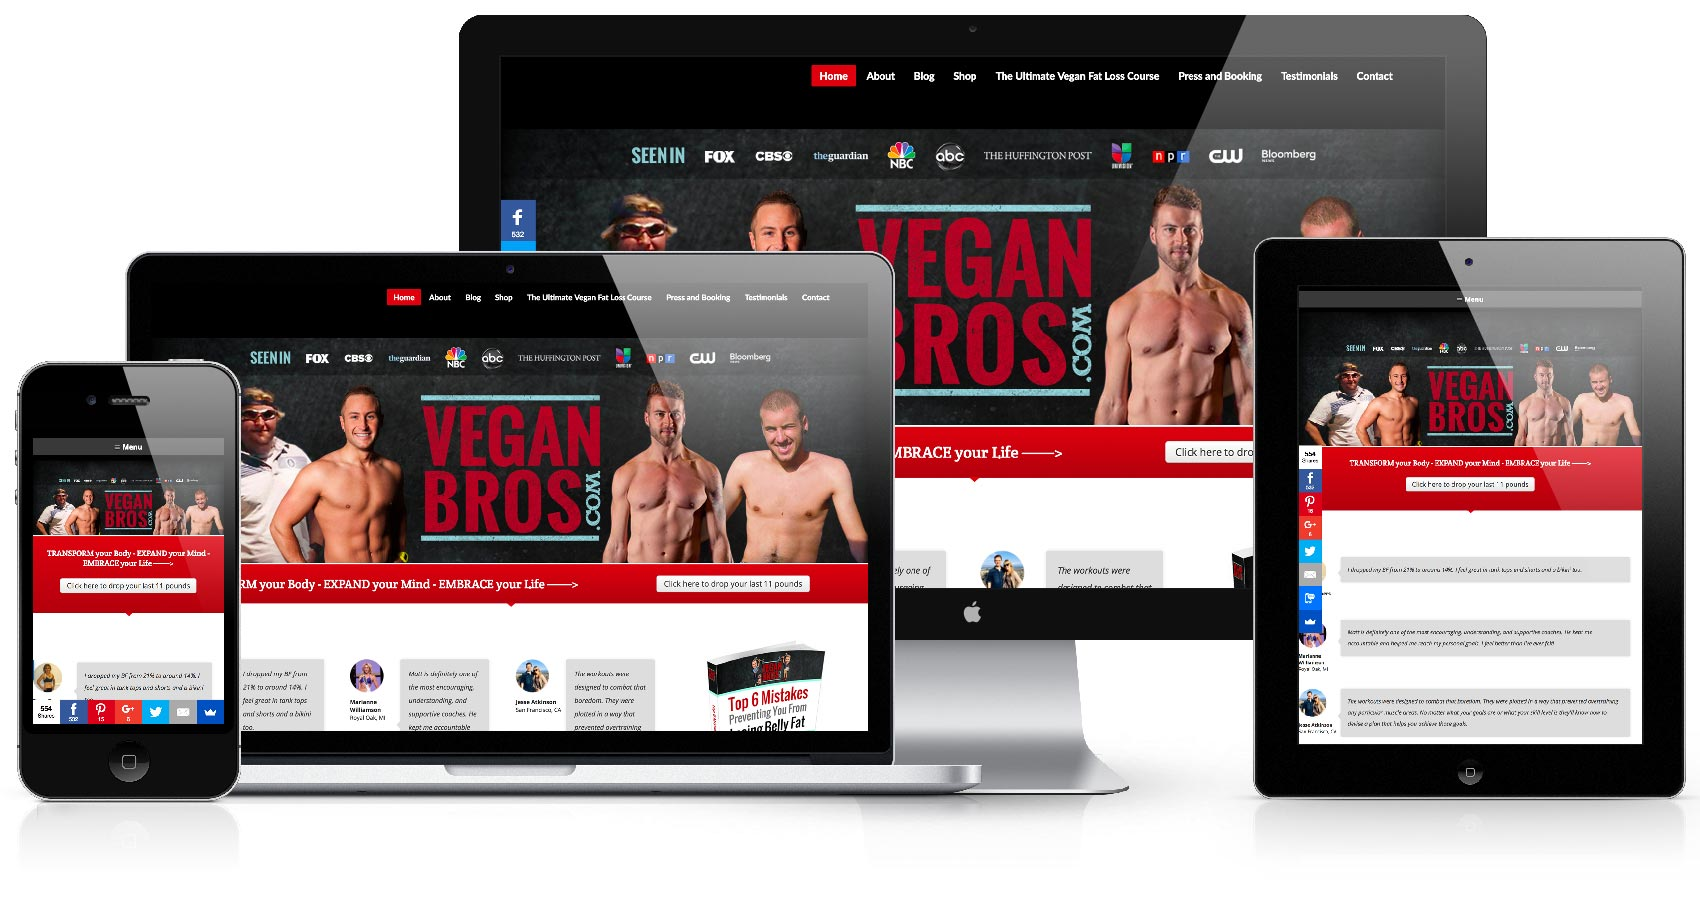 vegan bros website desktop mobile responsive retina